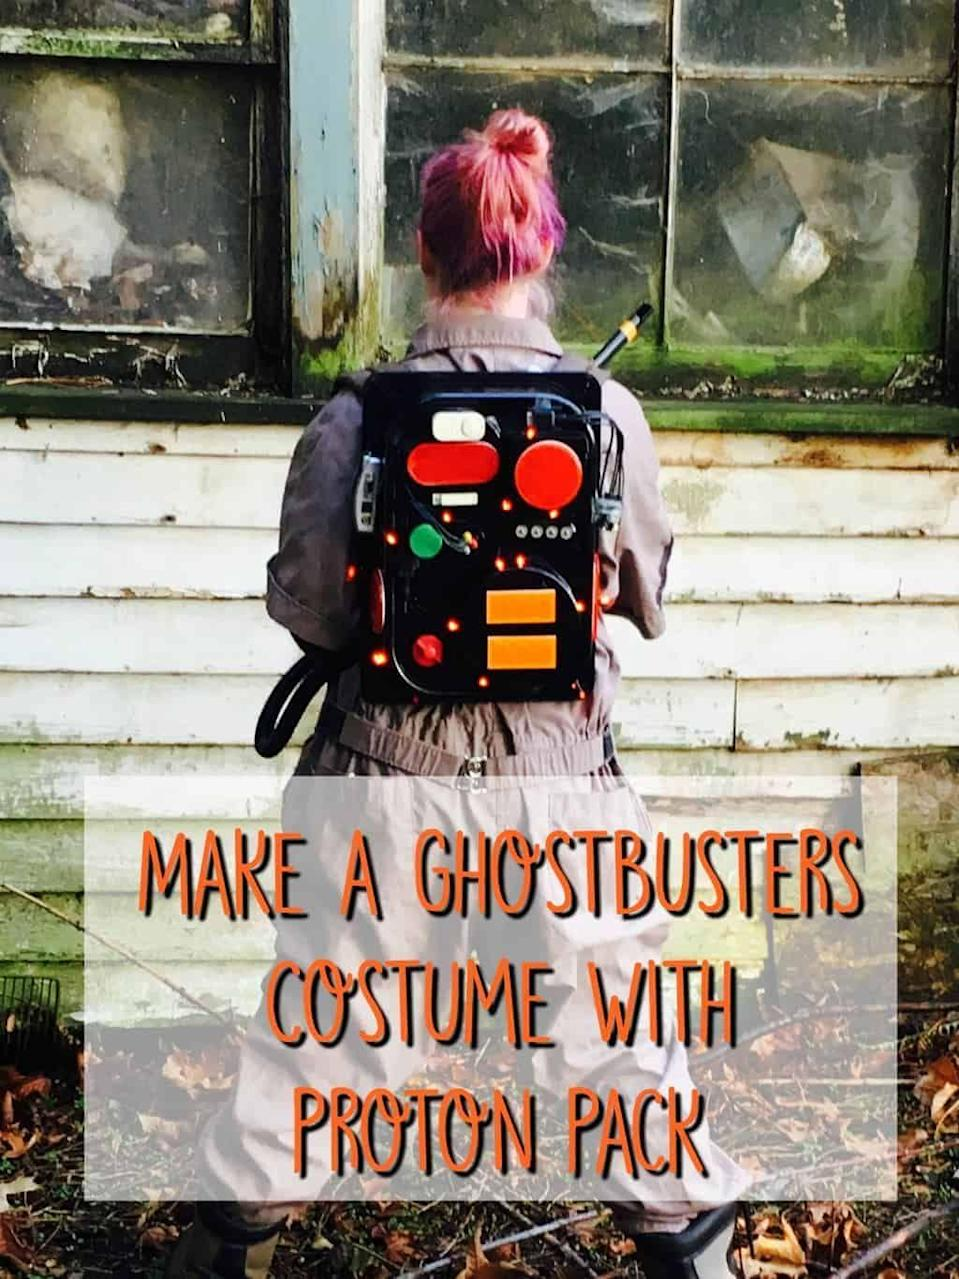 """<p>Who you gonna call? Ghostbusters! But where would a ghostbuster be without his or her trusty proton pack? This tutorial teaches you how to DIY a ghost capturer to go with your tan jumpsuit. </p><p><strong>See more at <a href=""""https://www.craftylittlegnome.com/ghostbusters-costume-tutorial-walmart-family-mobile/"""" rel=""""nofollow noopener"""" target=""""_blank"""" data-ylk=""""slk:Crafty Little Gnome"""" class=""""link rapid-noclick-resp"""">Crafty Little Gnome</a>.</strong></p><p><a class=""""link rapid-noclick-resp"""" href=""""https://go.redirectingat.com?id=74968X1596630&url=https%3A%2F%2Fwww.walmart.com%2Fip%2FGhostbusters-Peter-Venkman-Adult-Halloween-Costume%2F10153581&sref=https%3A%2F%2Fwww.thepioneerwoman.com%2Fholidays-celebrations%2Fg32645069%2F80s-halloween-costumes%2F"""" rel=""""nofollow noopener"""" target=""""_blank"""" data-ylk=""""slk:SHOP GHOSTBUSTERS JUMPSUIT"""">SHOP GHOSTBUSTERS JUMPSUIT</a></p>"""